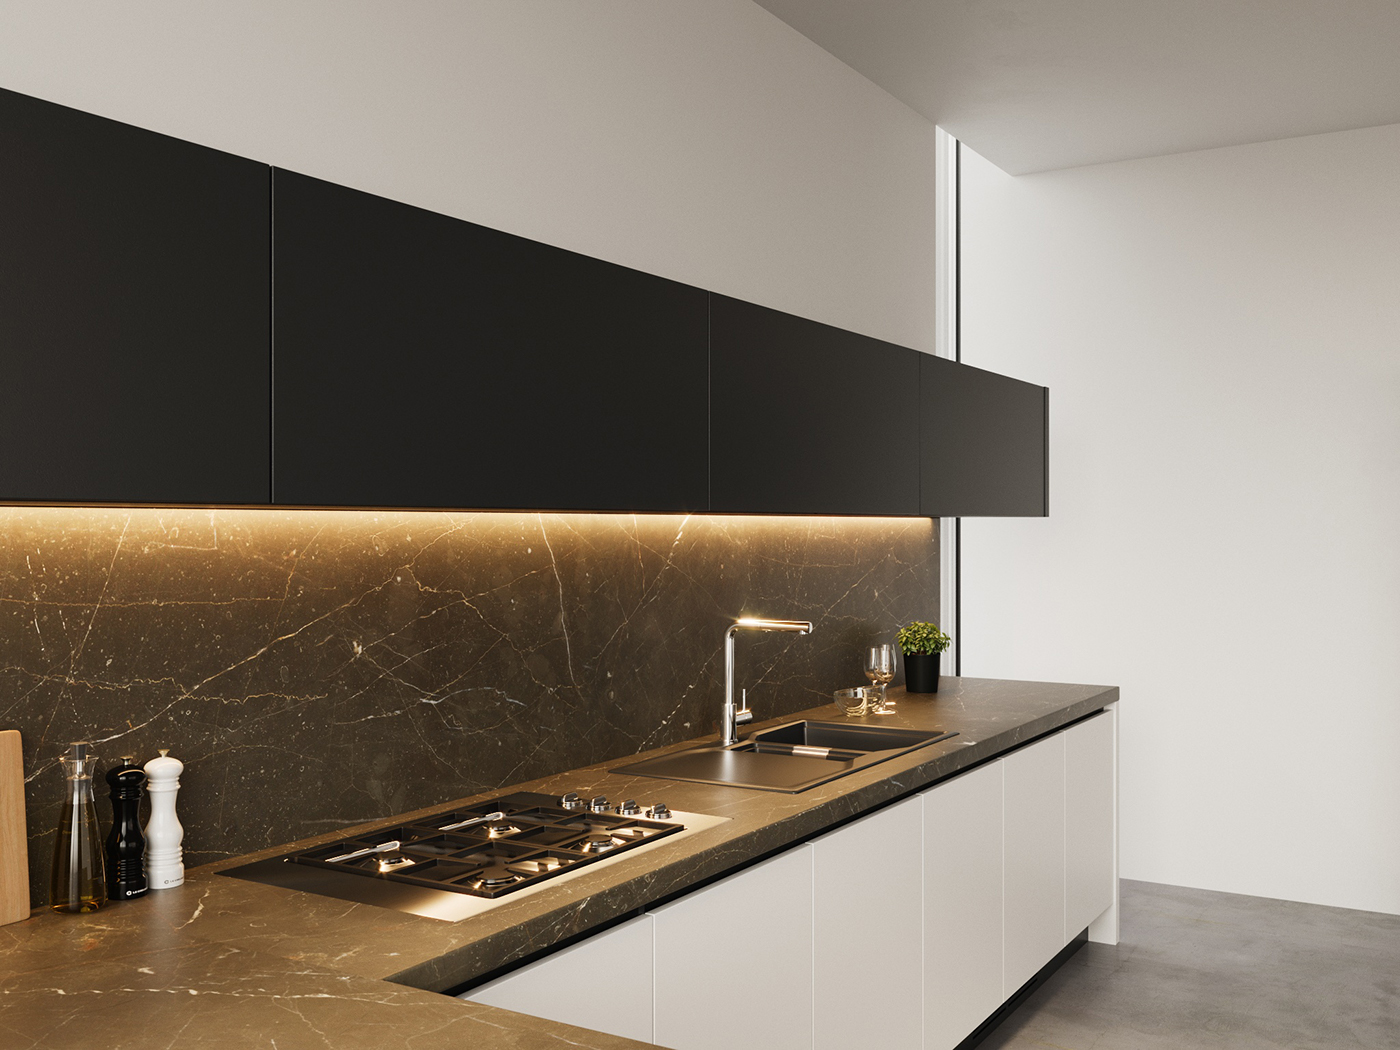 Genial ... Poliform Varenna Kitchens. The Idea Is To Have Several Sets Of Images,  Showing Different Layouts And Different Models Of Kitchens In A  Photorealistic, ...